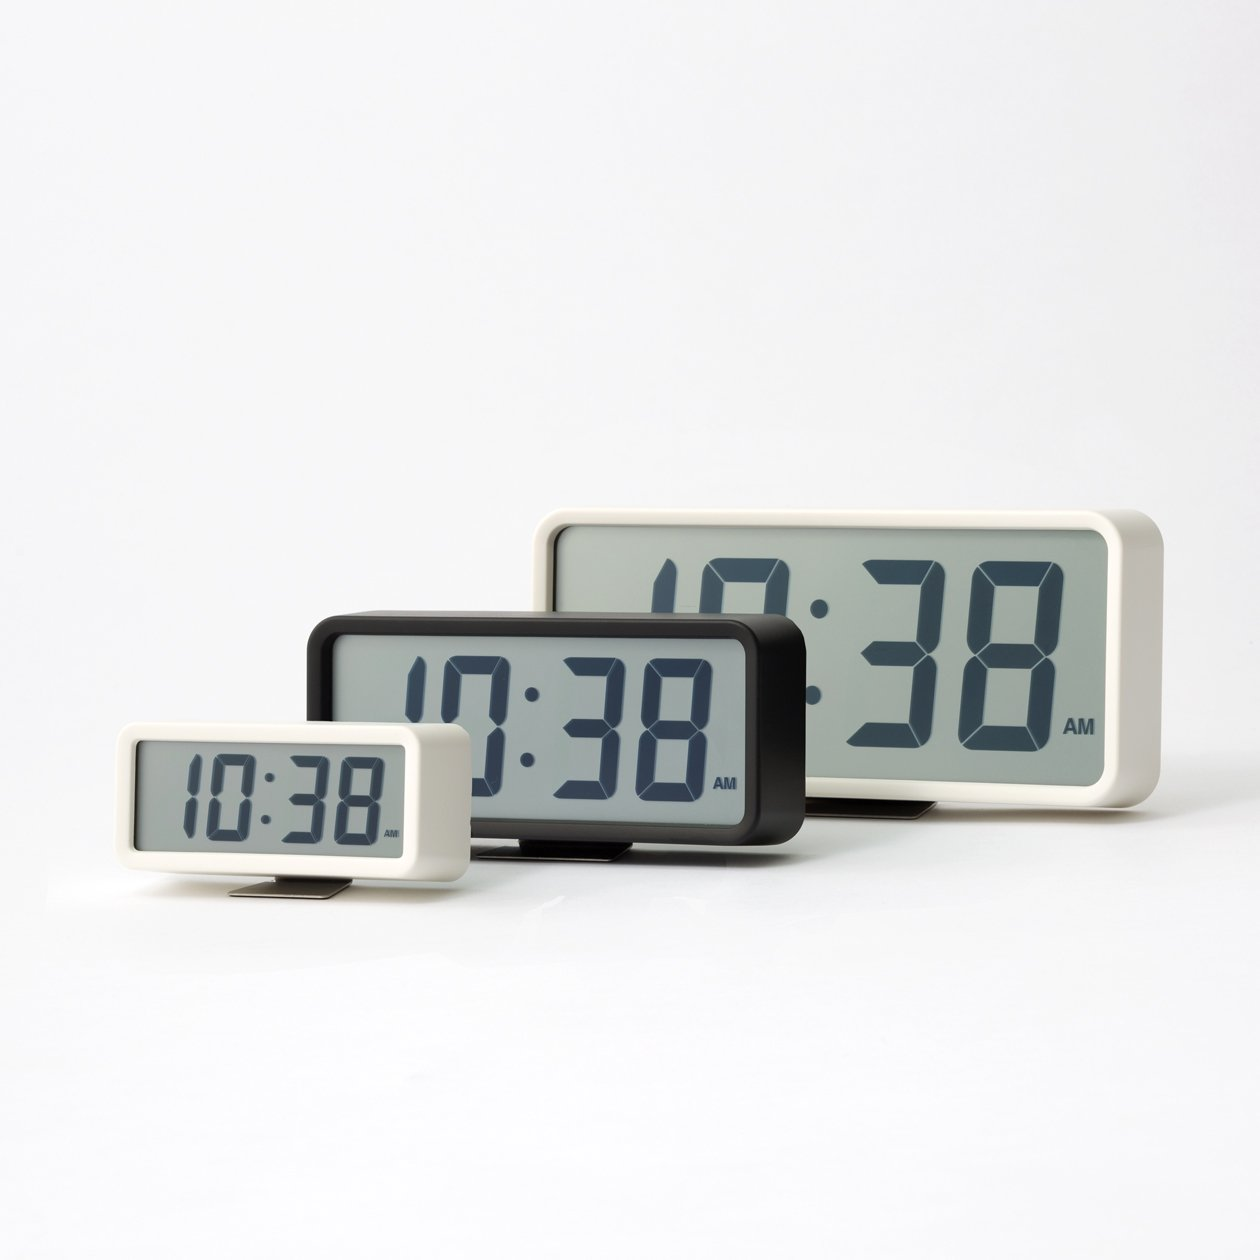 Amazon.com: [Muji] Digital Clock Large Size White 15831975 MJ-DCLW1 from Japan: Sports & Outdoors